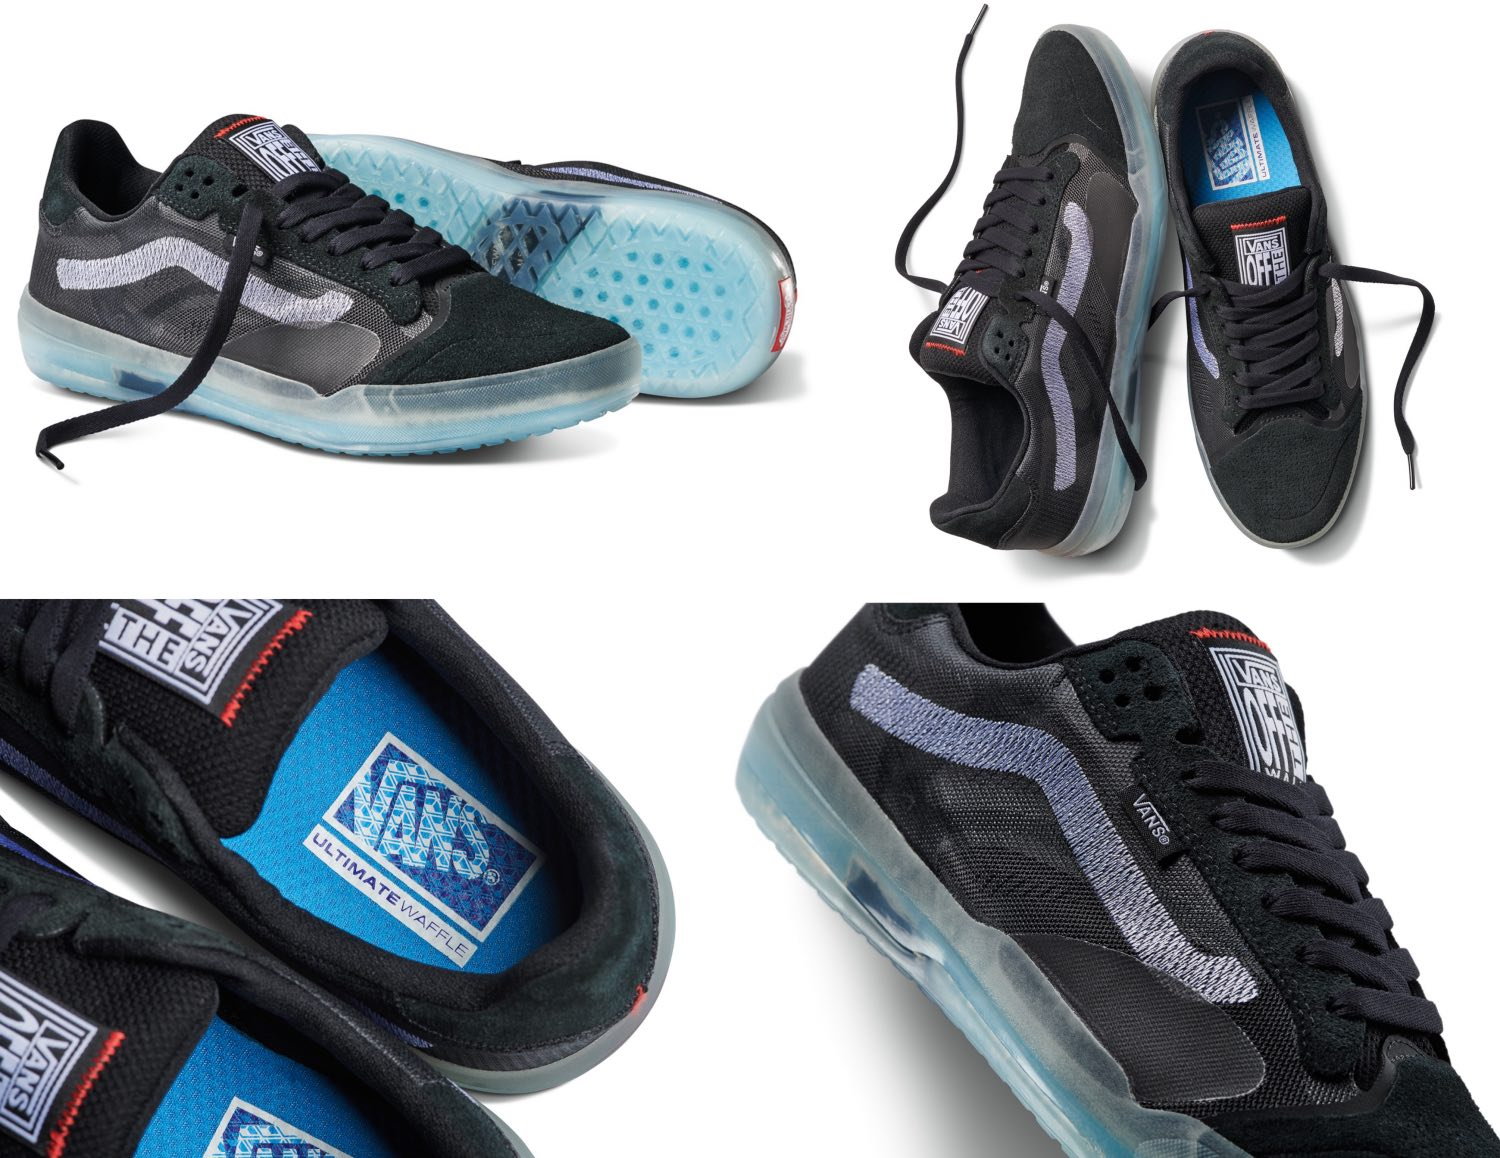 The Vans EVDNT UltimateWaffle comes in a robust color scheme in shades of grey